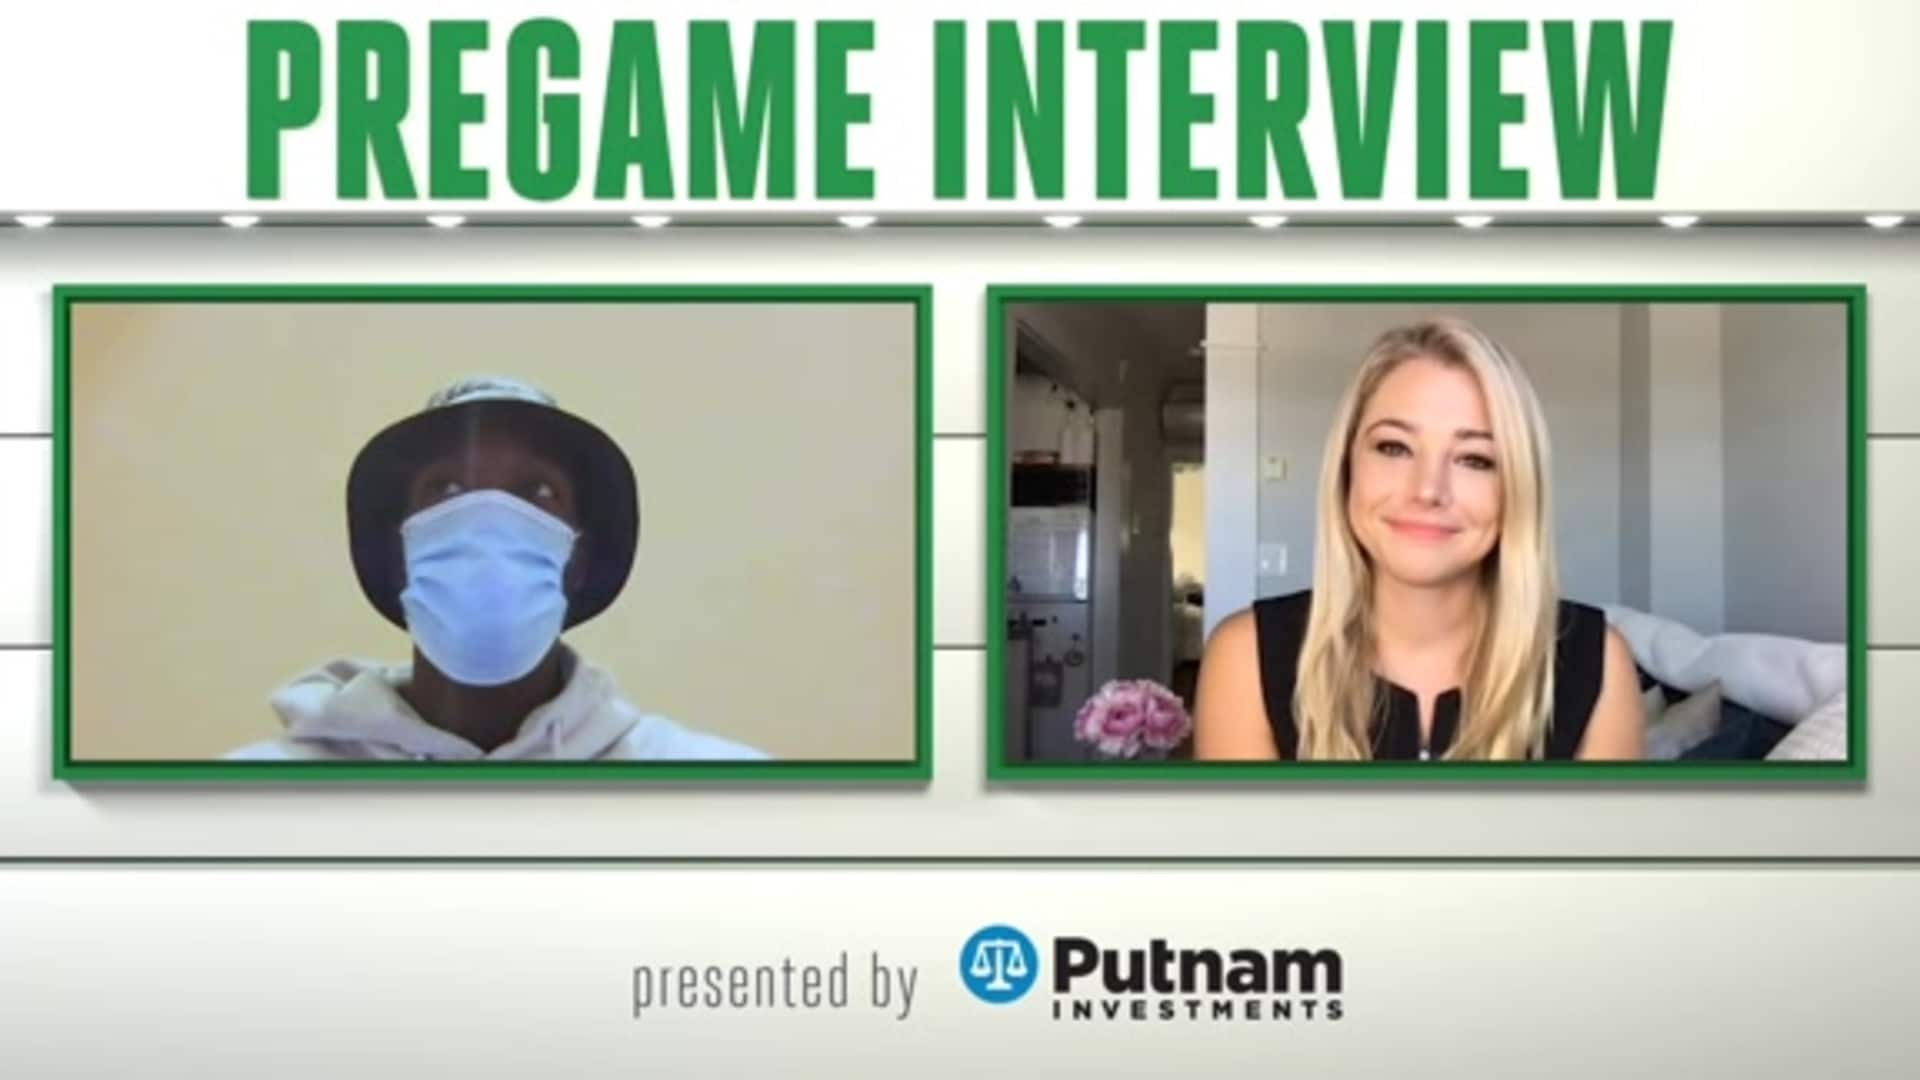 7/31 Putnam Pregame Interview: 'Finding Our Rhythm'